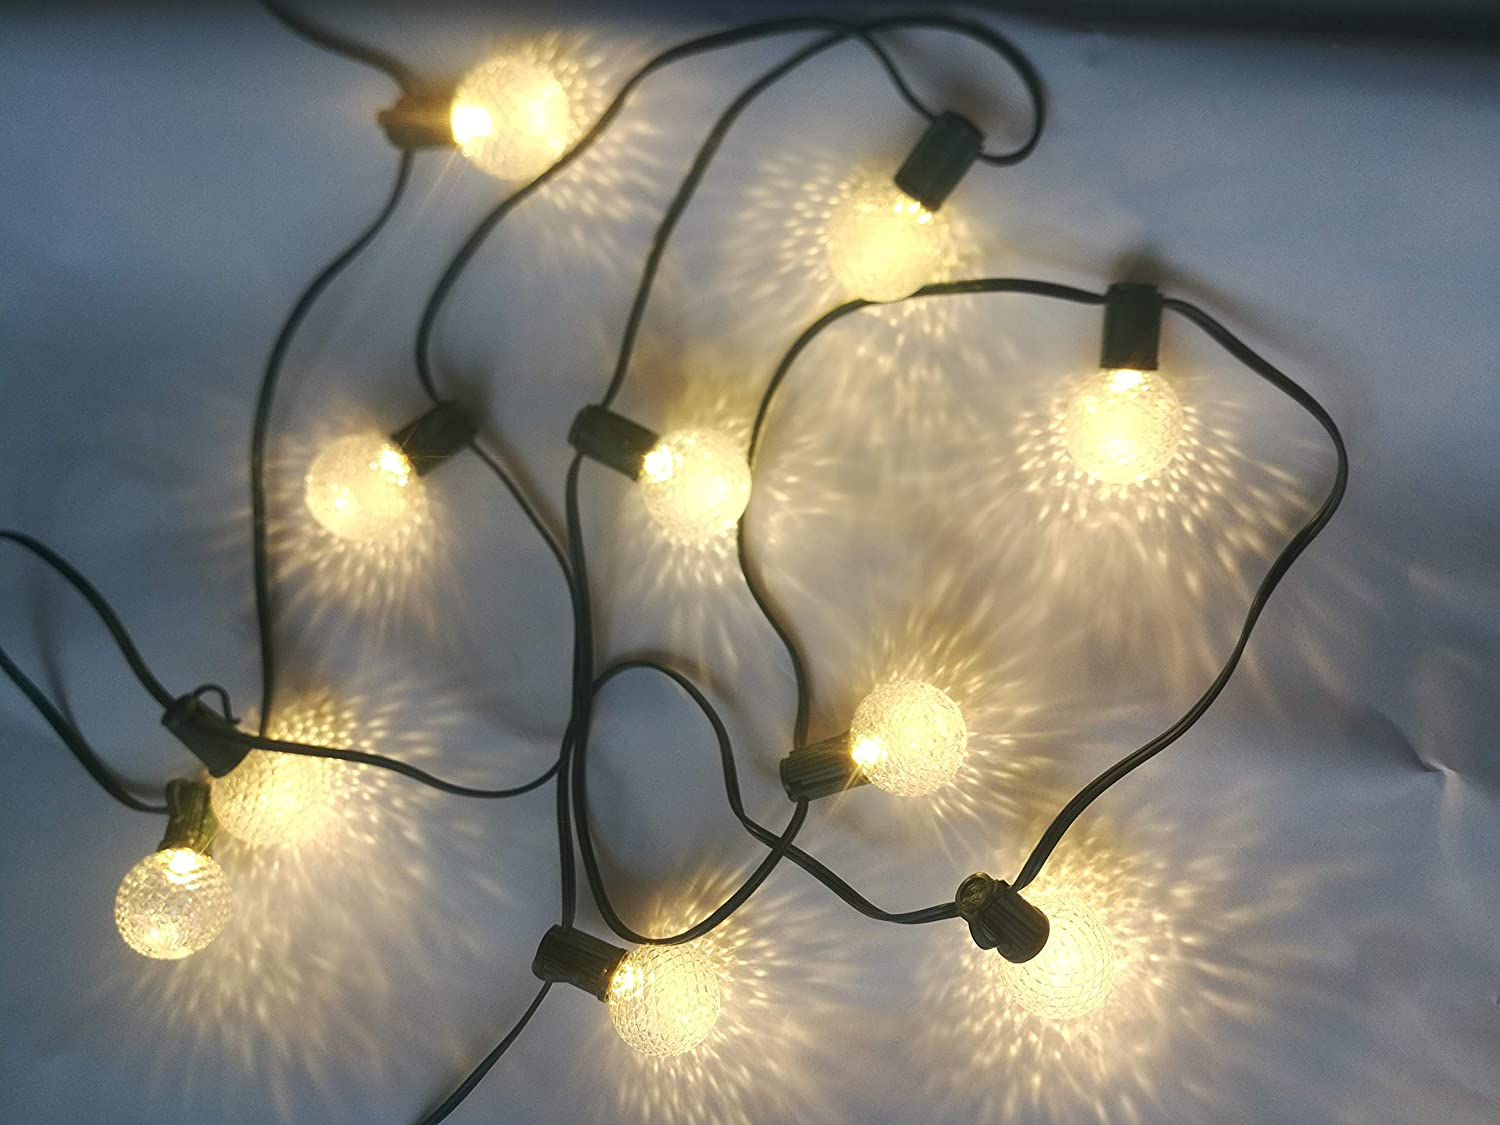 E12 Base G40 Bulb Patio Commercial Grade Light String 12pcs G40 Fairy Lights 4aa Battery Operated String Lights Outdoor Holiday Festival Xmas Lights with Remote